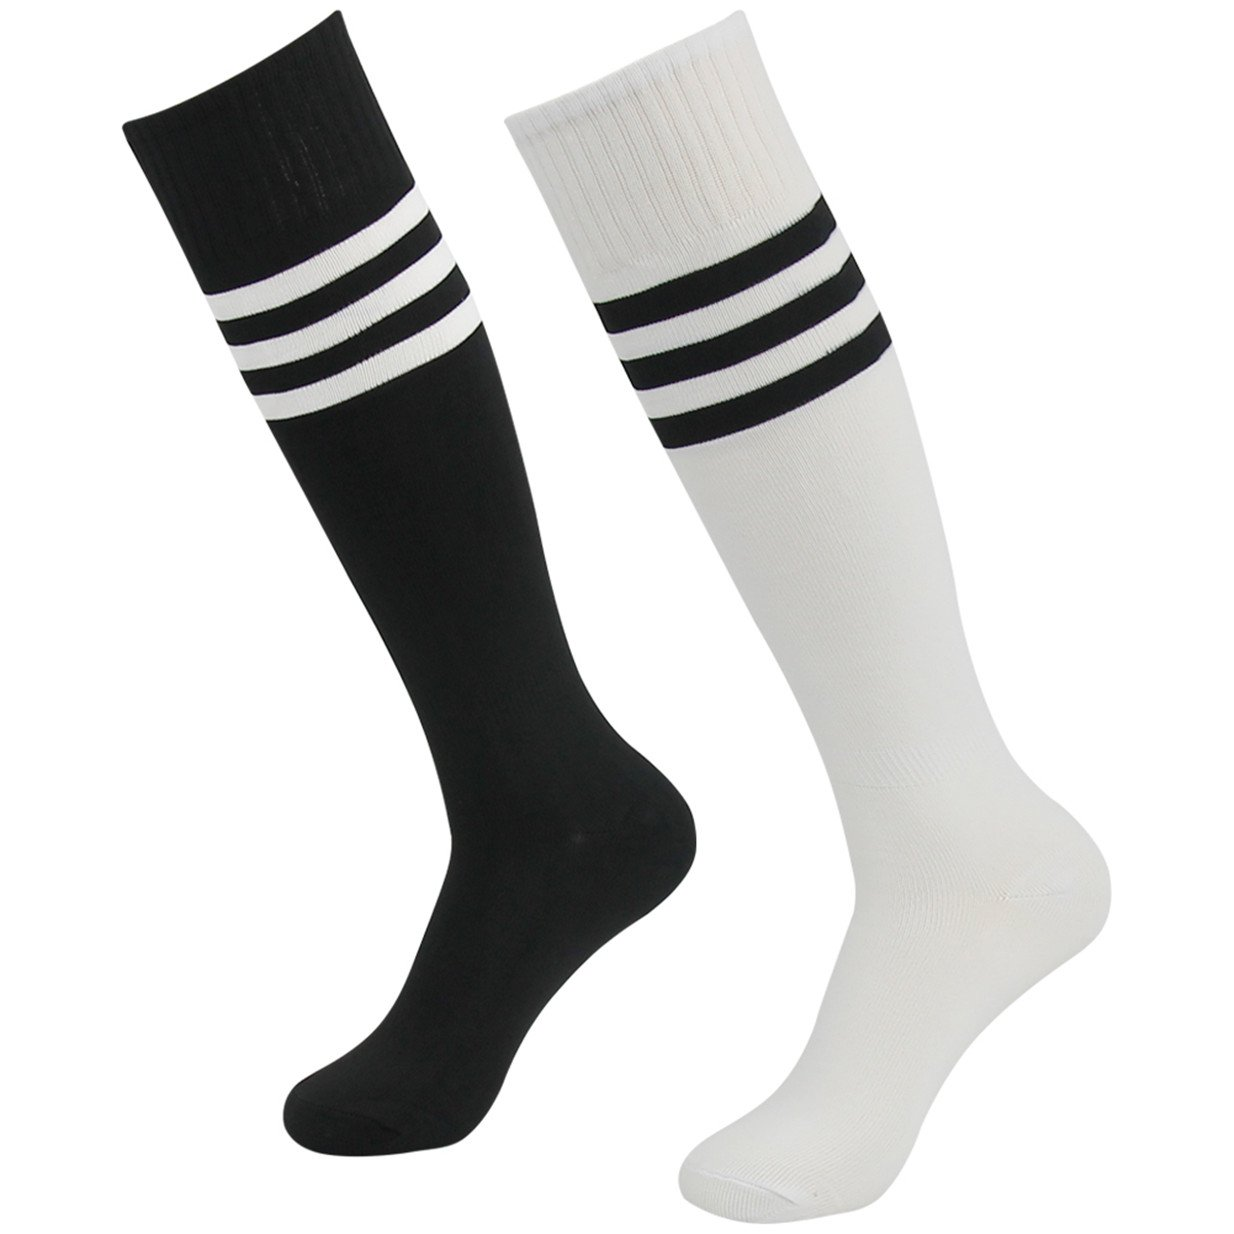 4th Tank Battalion Unisex Sport Socks 30cm Long Sock